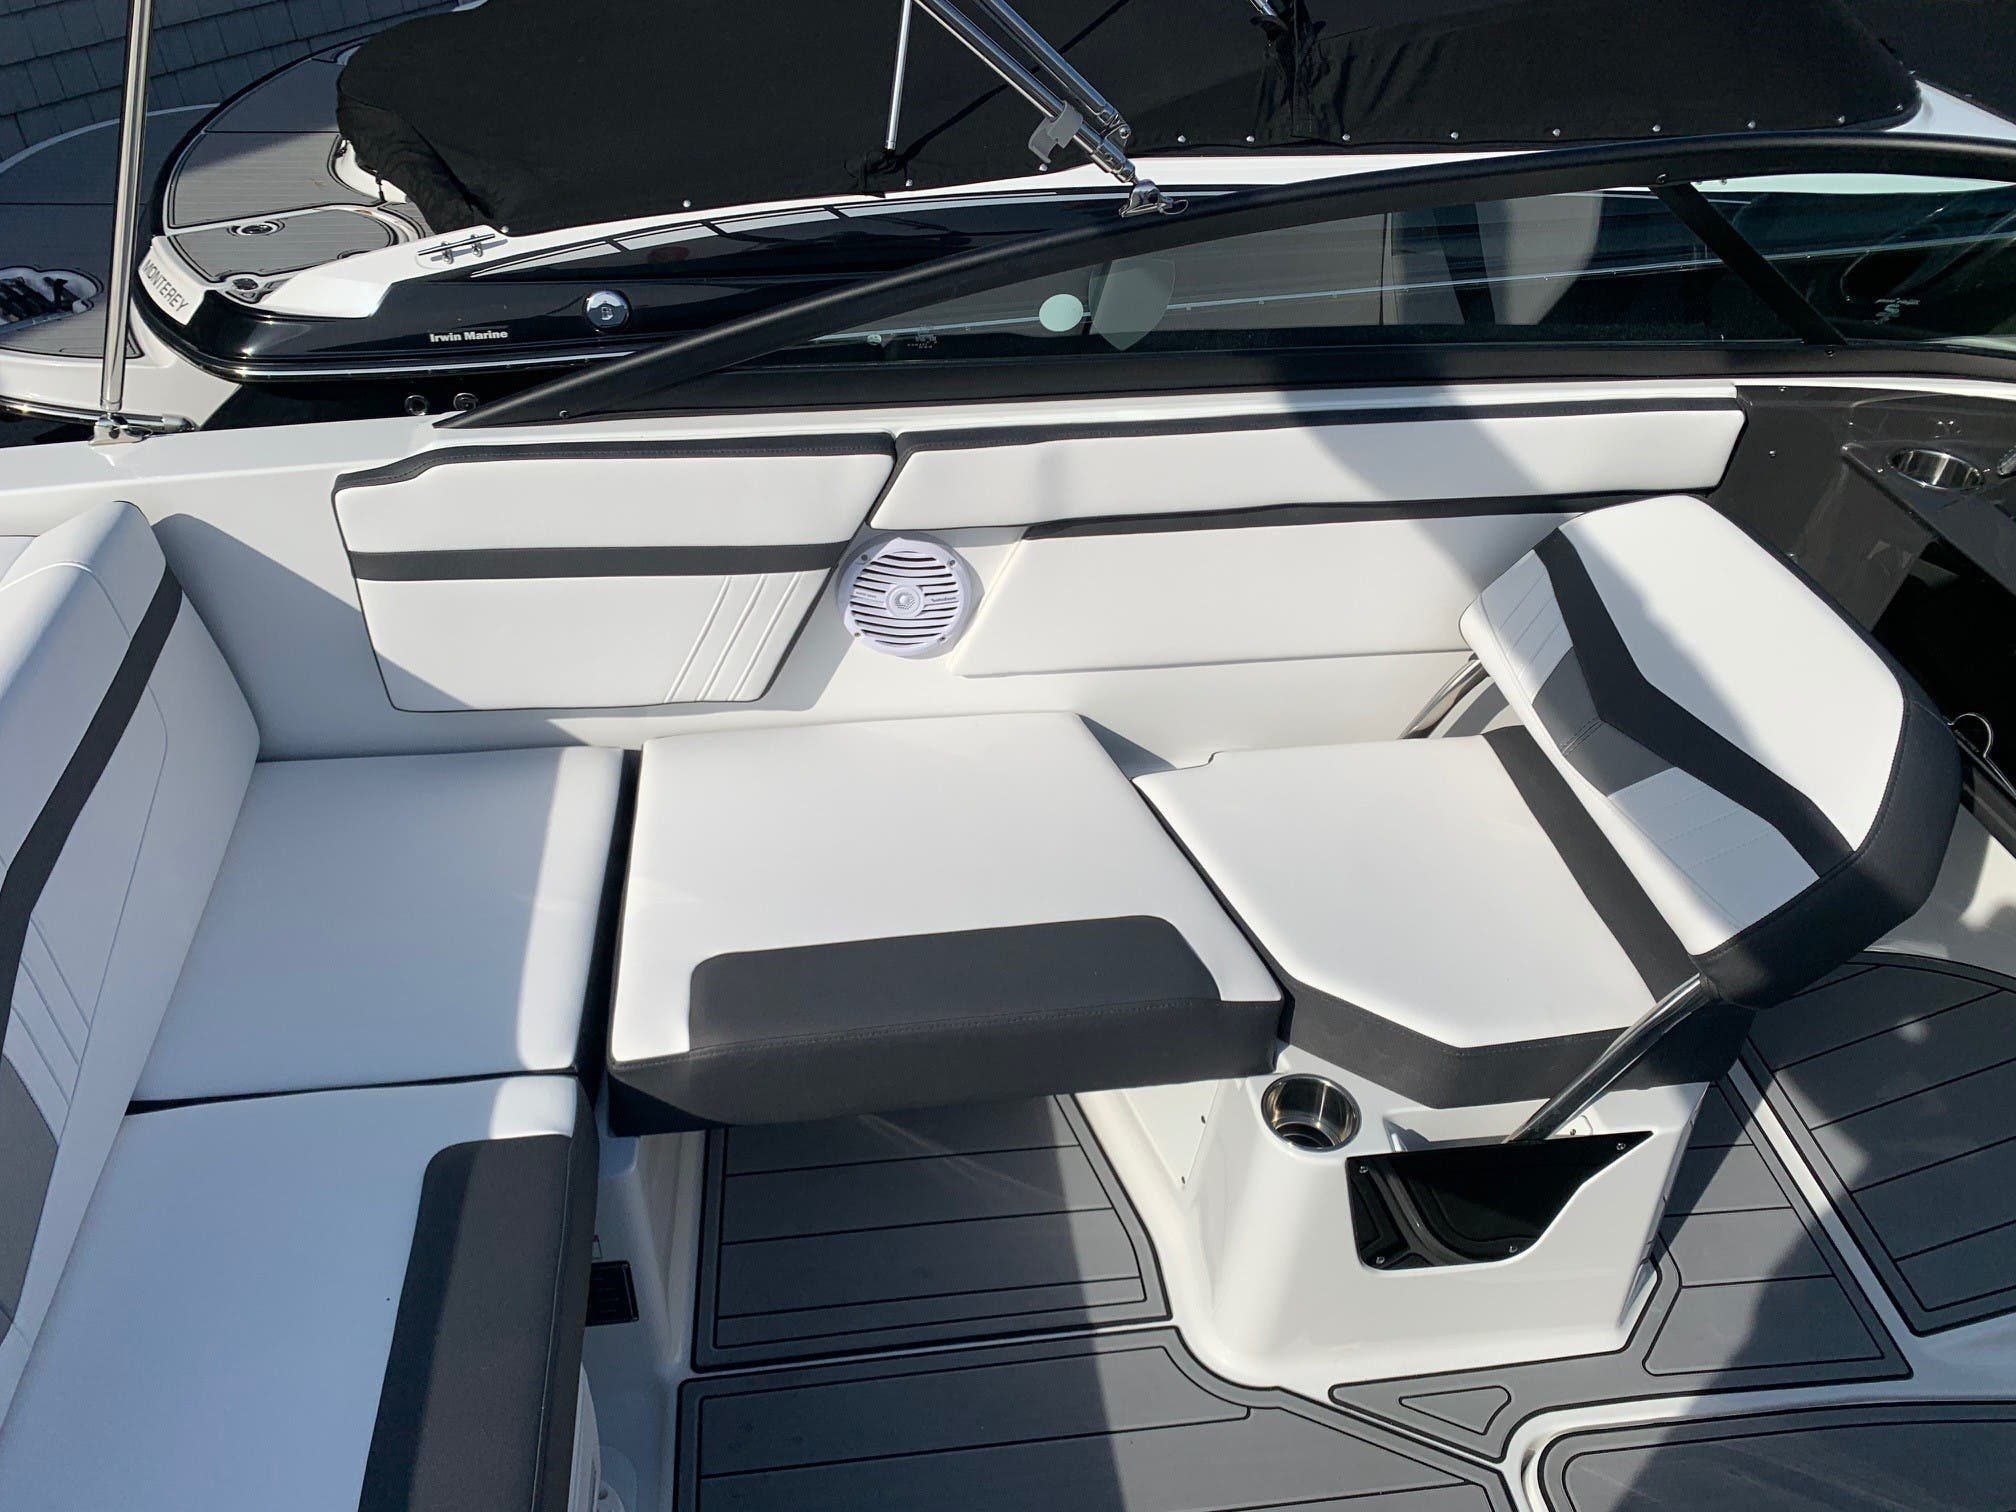 2021 Monterey boat for sale, model of the boat is M 22 & Image # 7 of 13